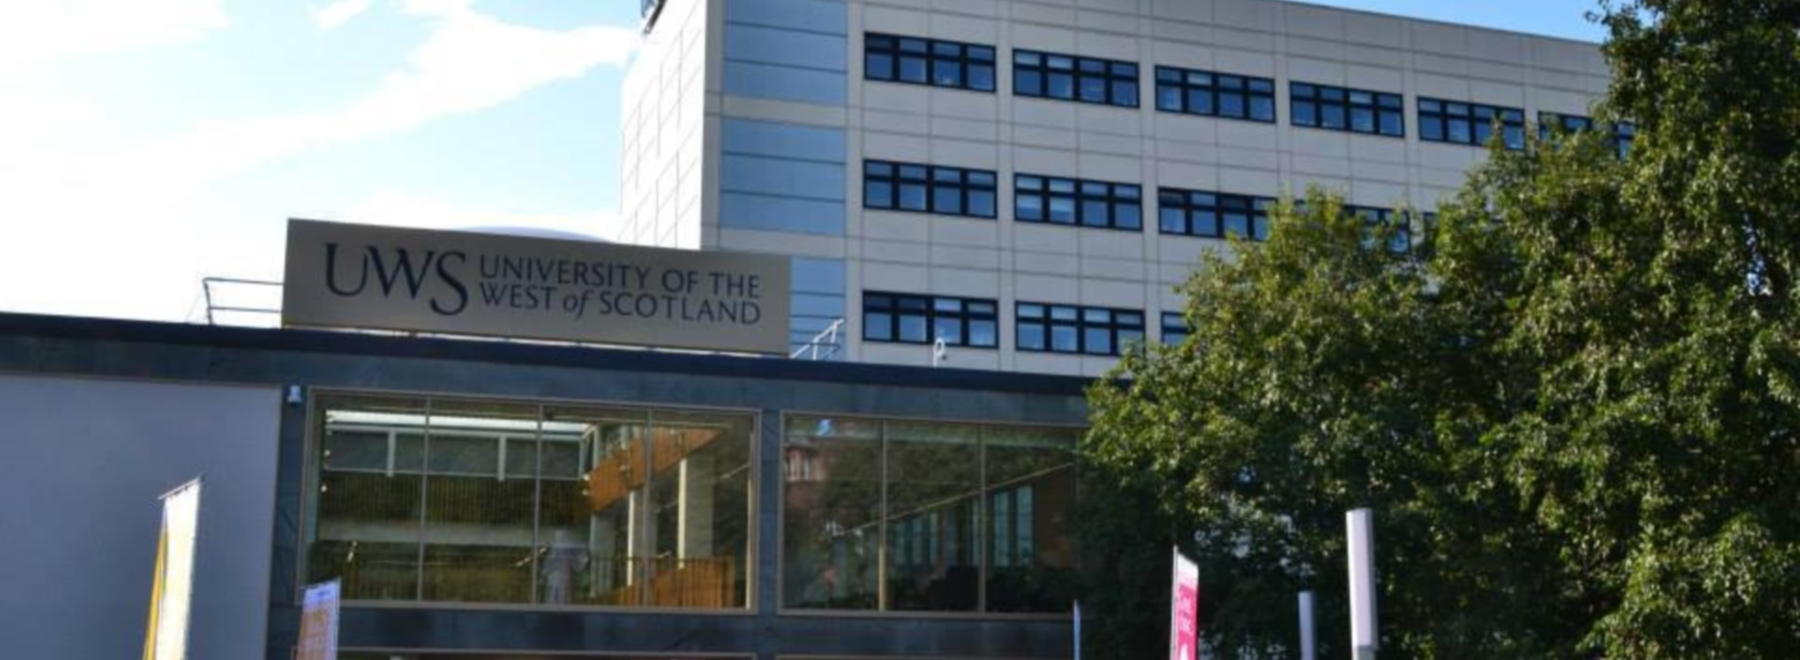 University of the West of Scotland header